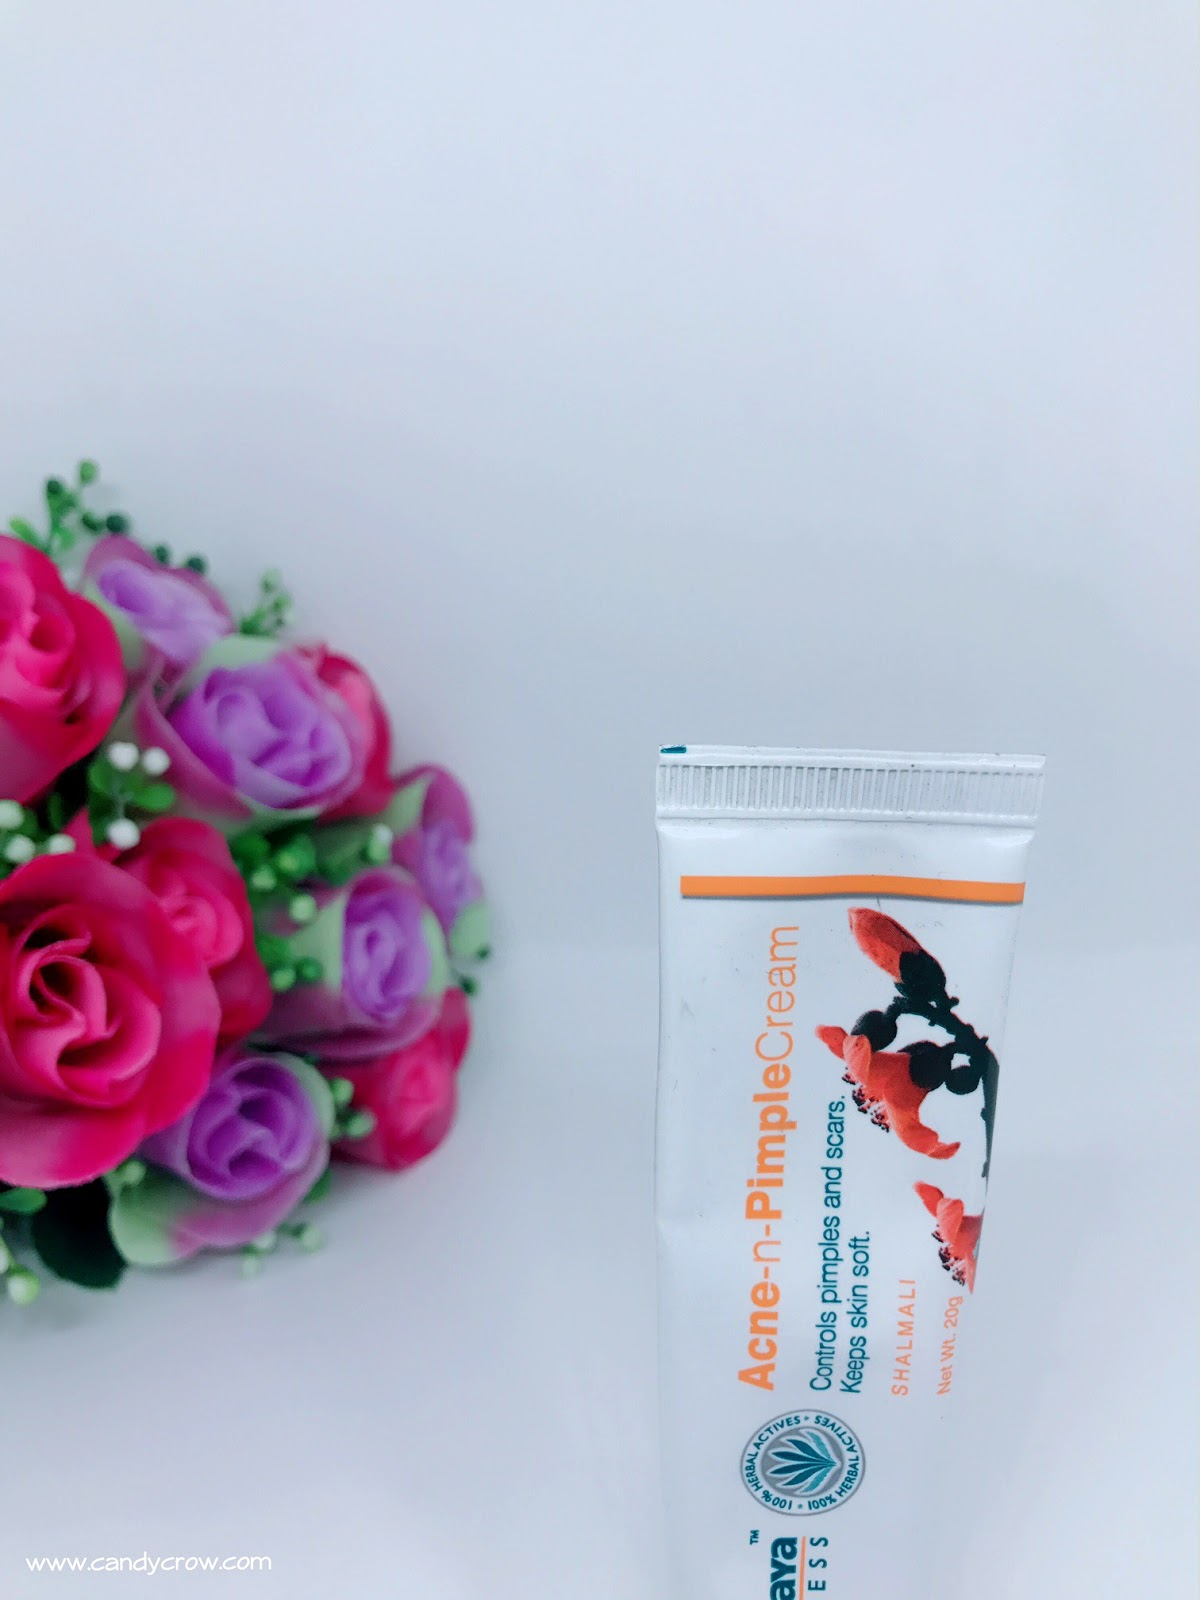 Himalaya Acne N Pimple Cream Review Candy Crow Indian